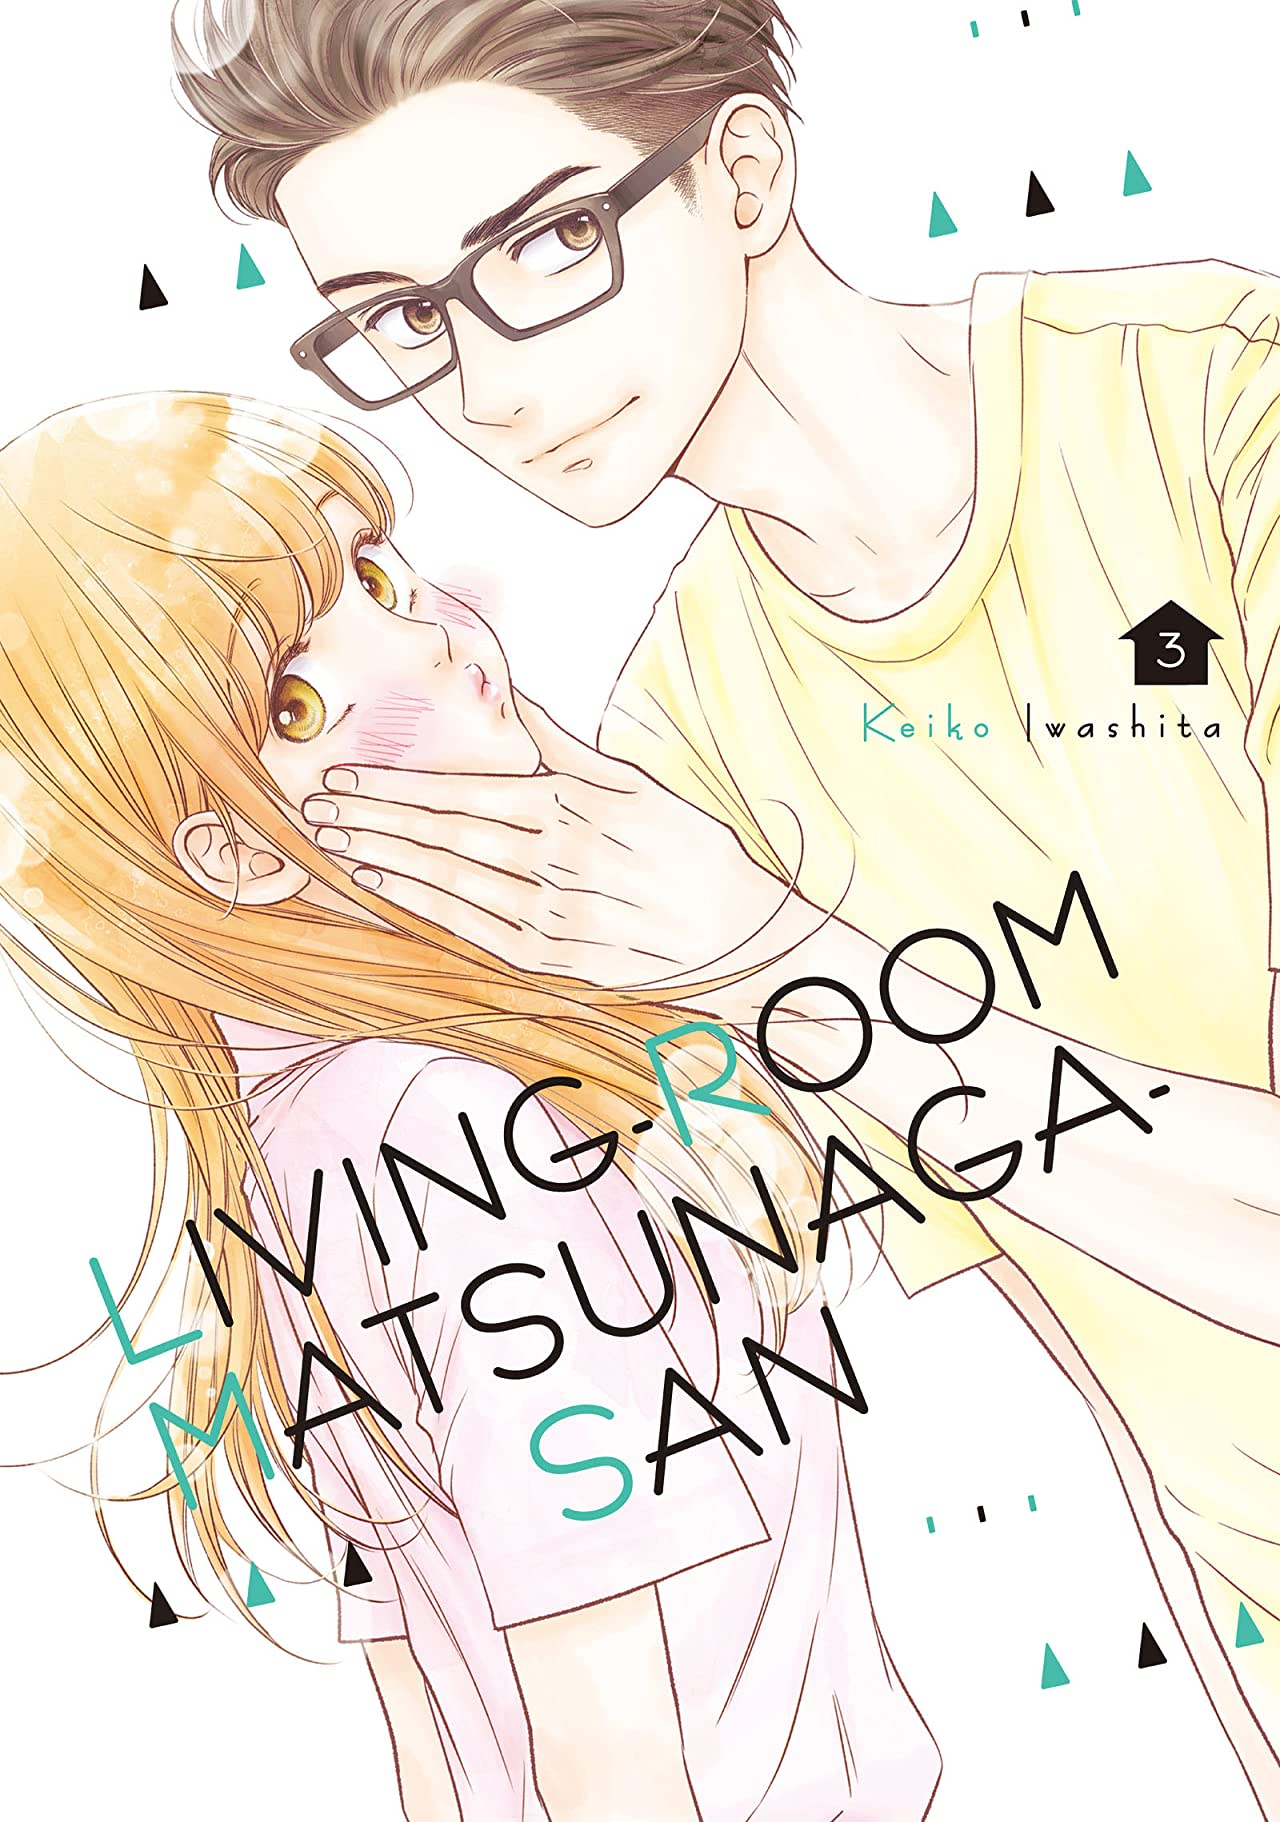 Living-Room Matsunaga-san Vol. 3